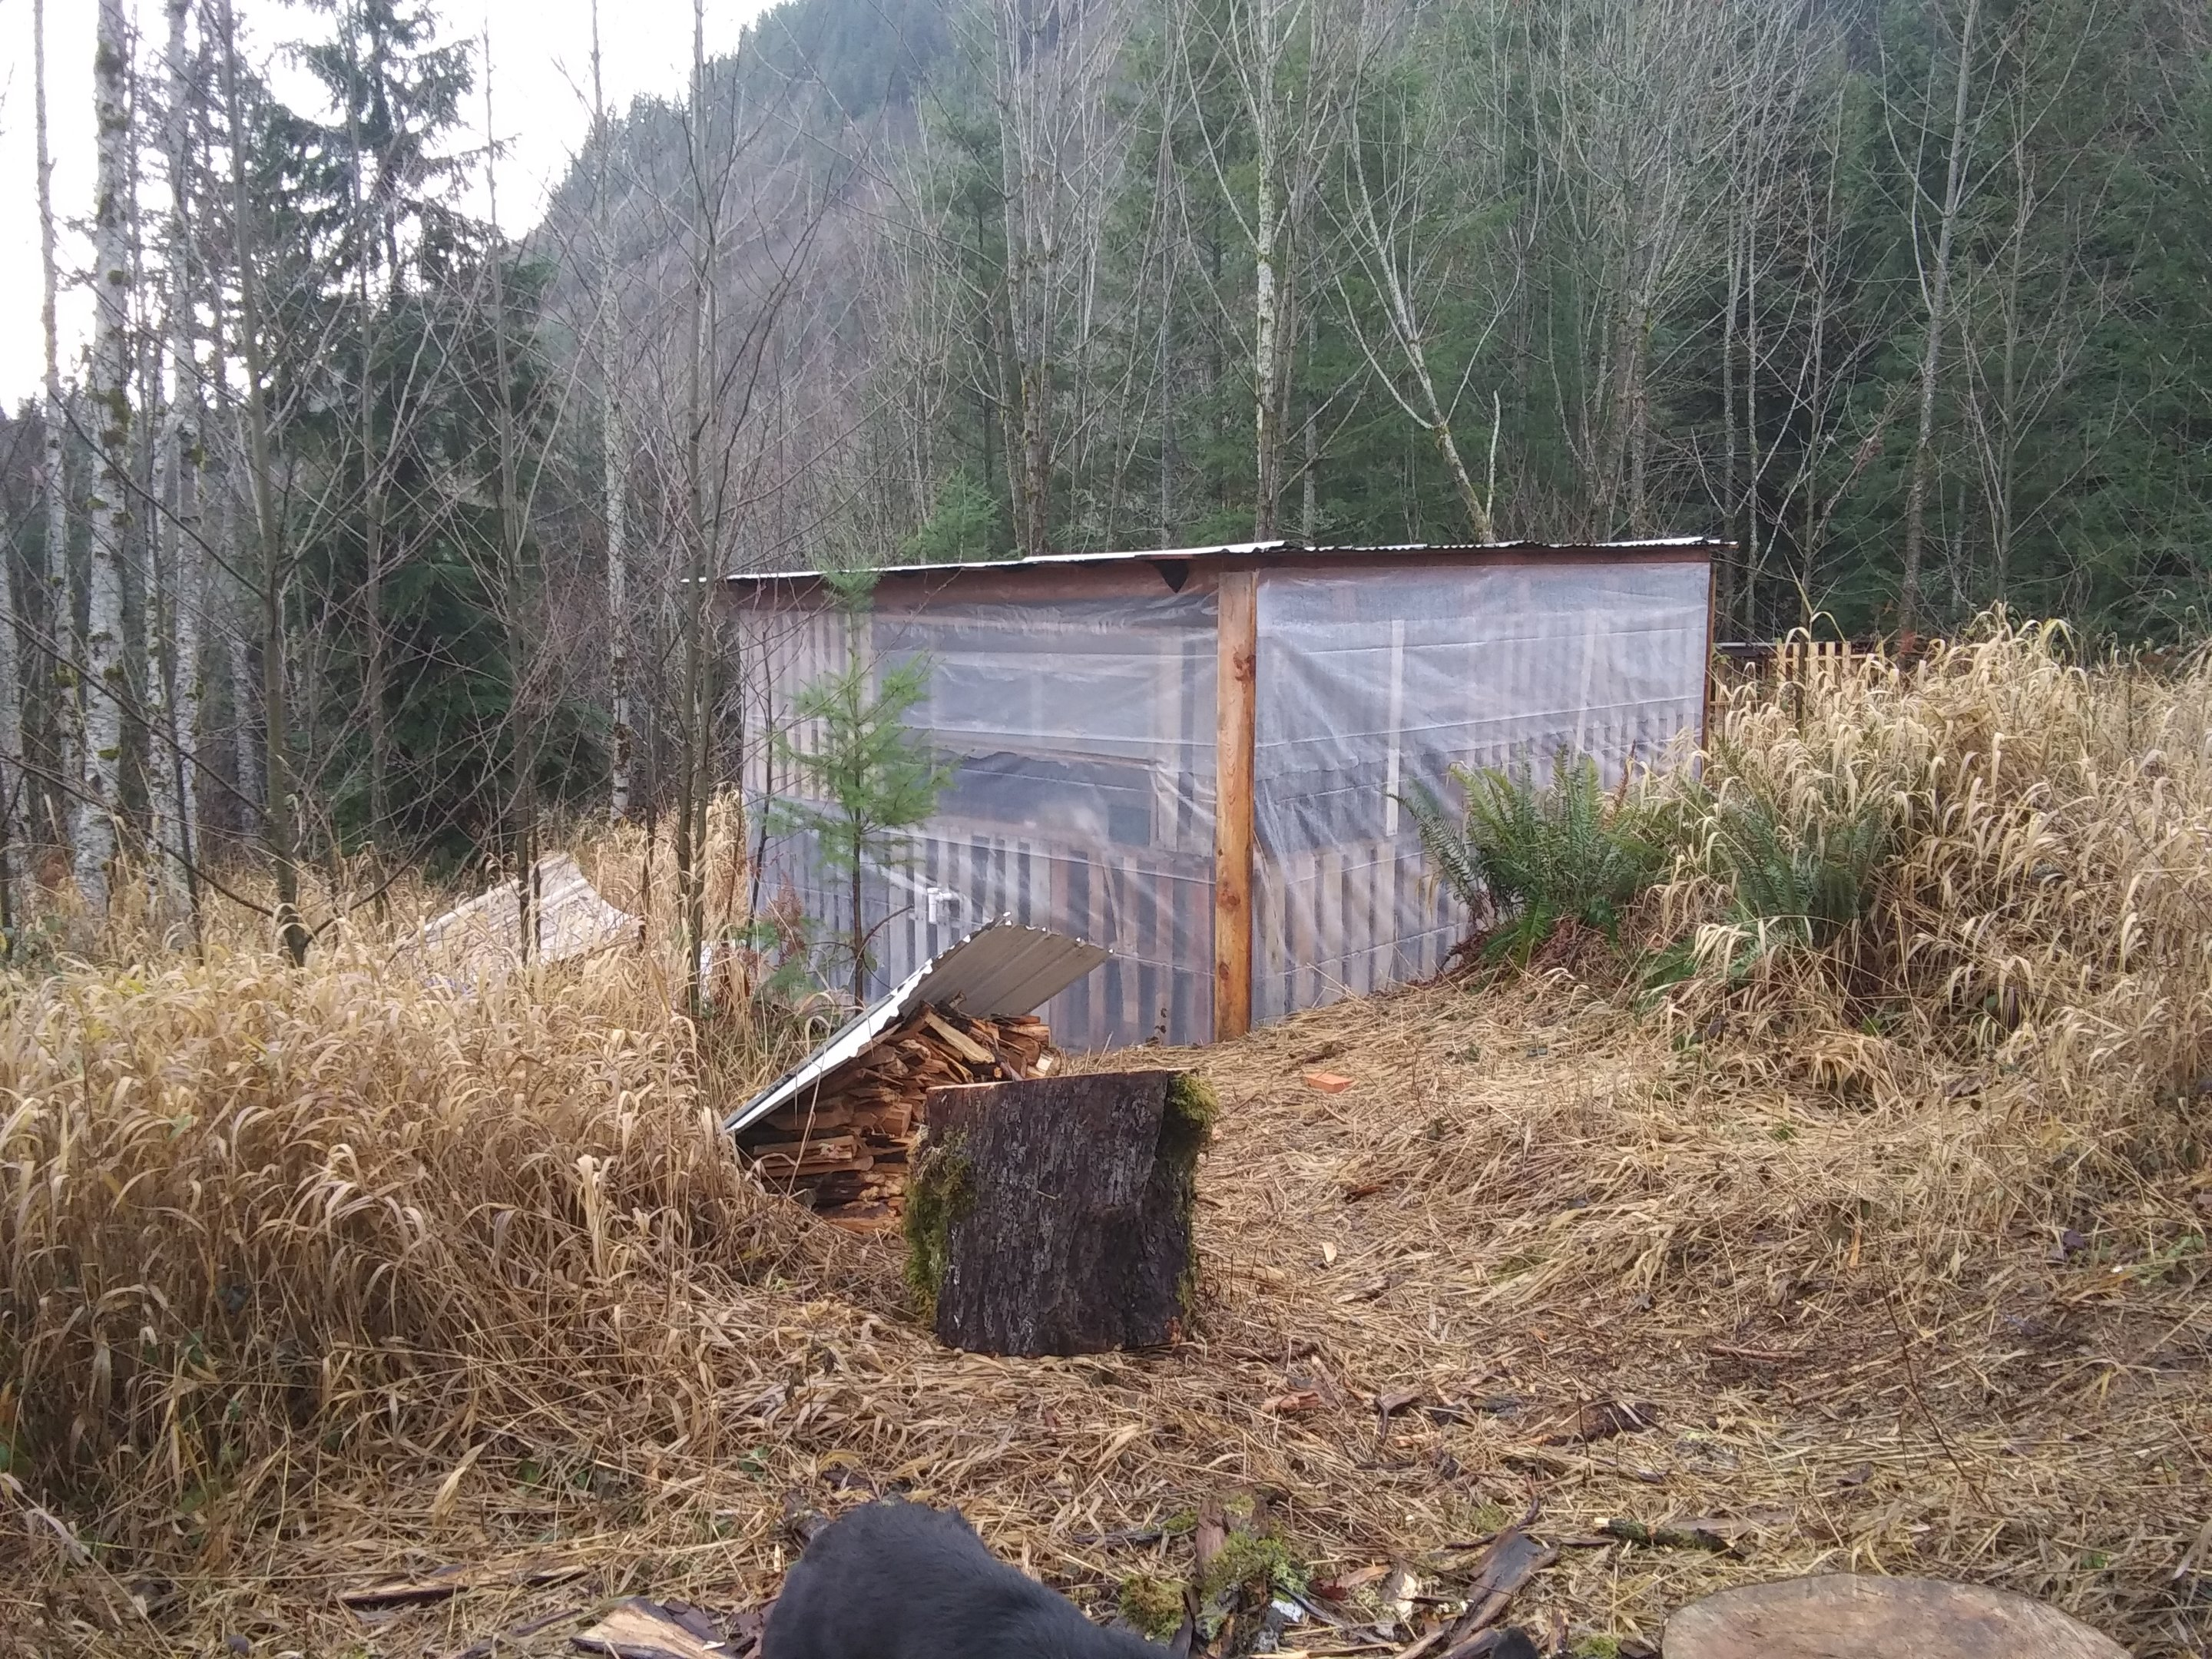 view-back-of-plasti-house-jpg.52727_Off-Grid homesteadin' wing'n it yeh_Alternative Housing_Squat the Planet_12:24 PM